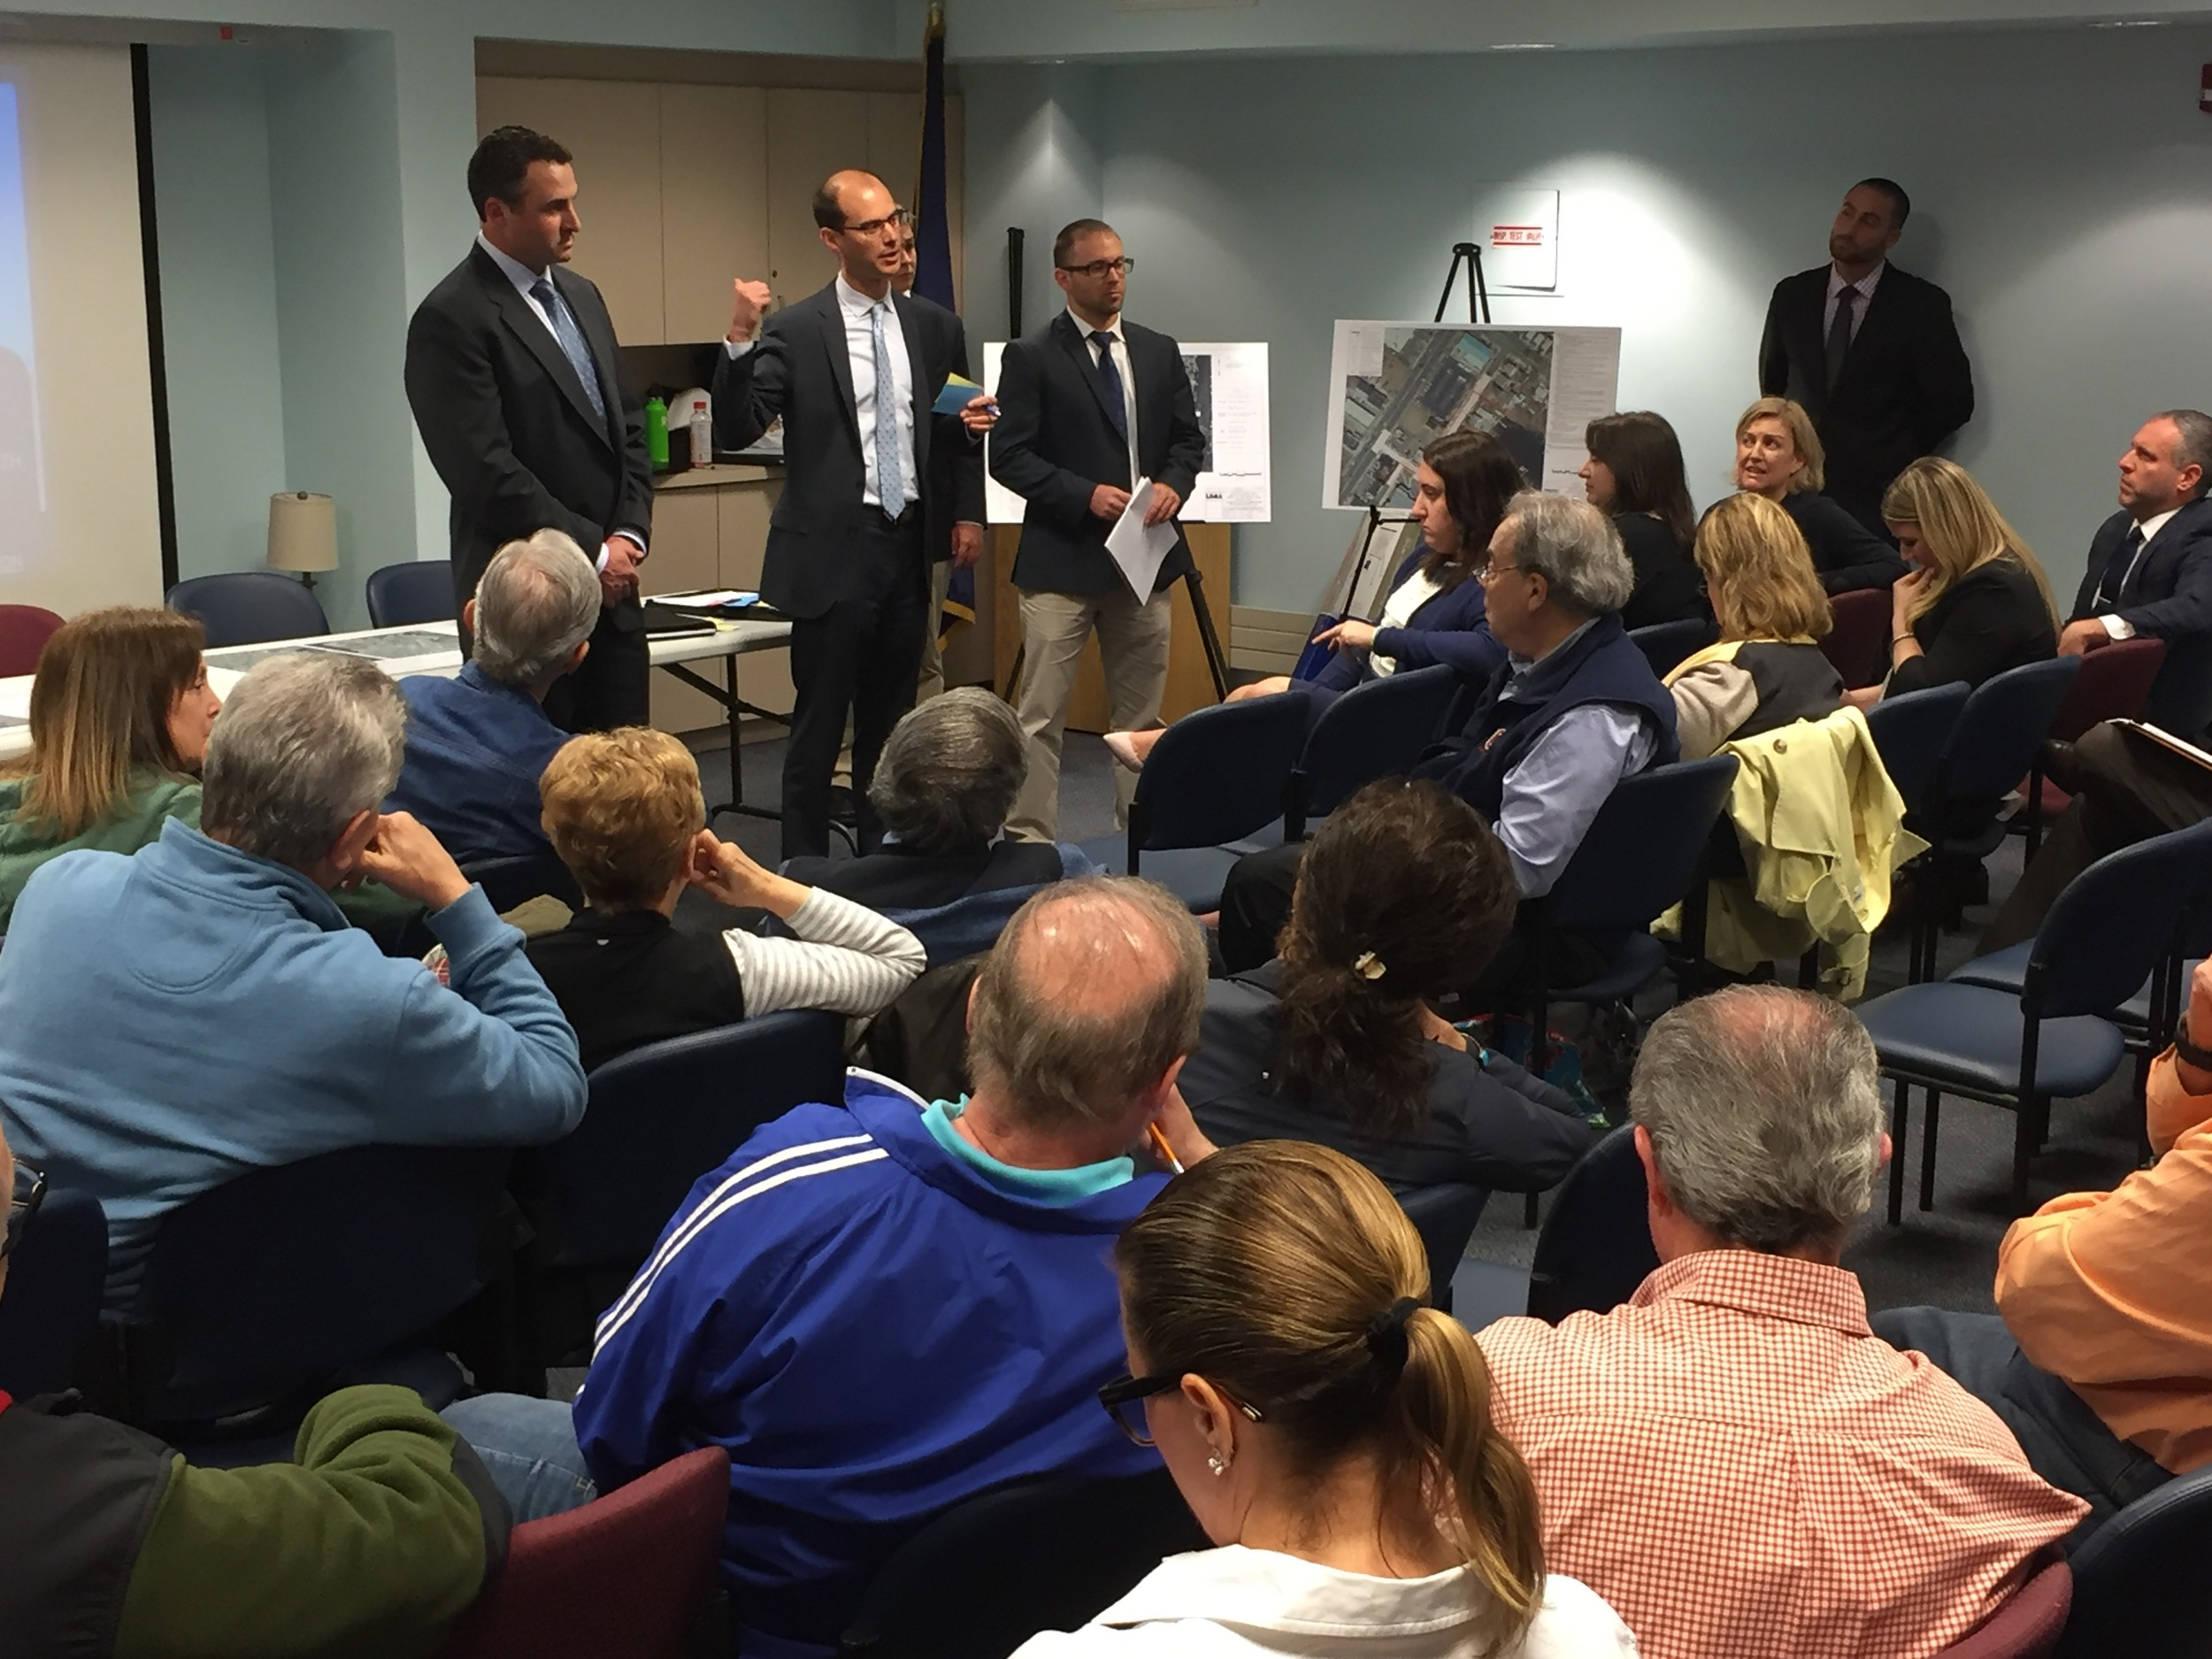 Sean Sallie, planning division supervisor for the Nassau Department of Public Works, center, helped answer residents' questions after a presentation outlining seven storm drainage mitigation projects.